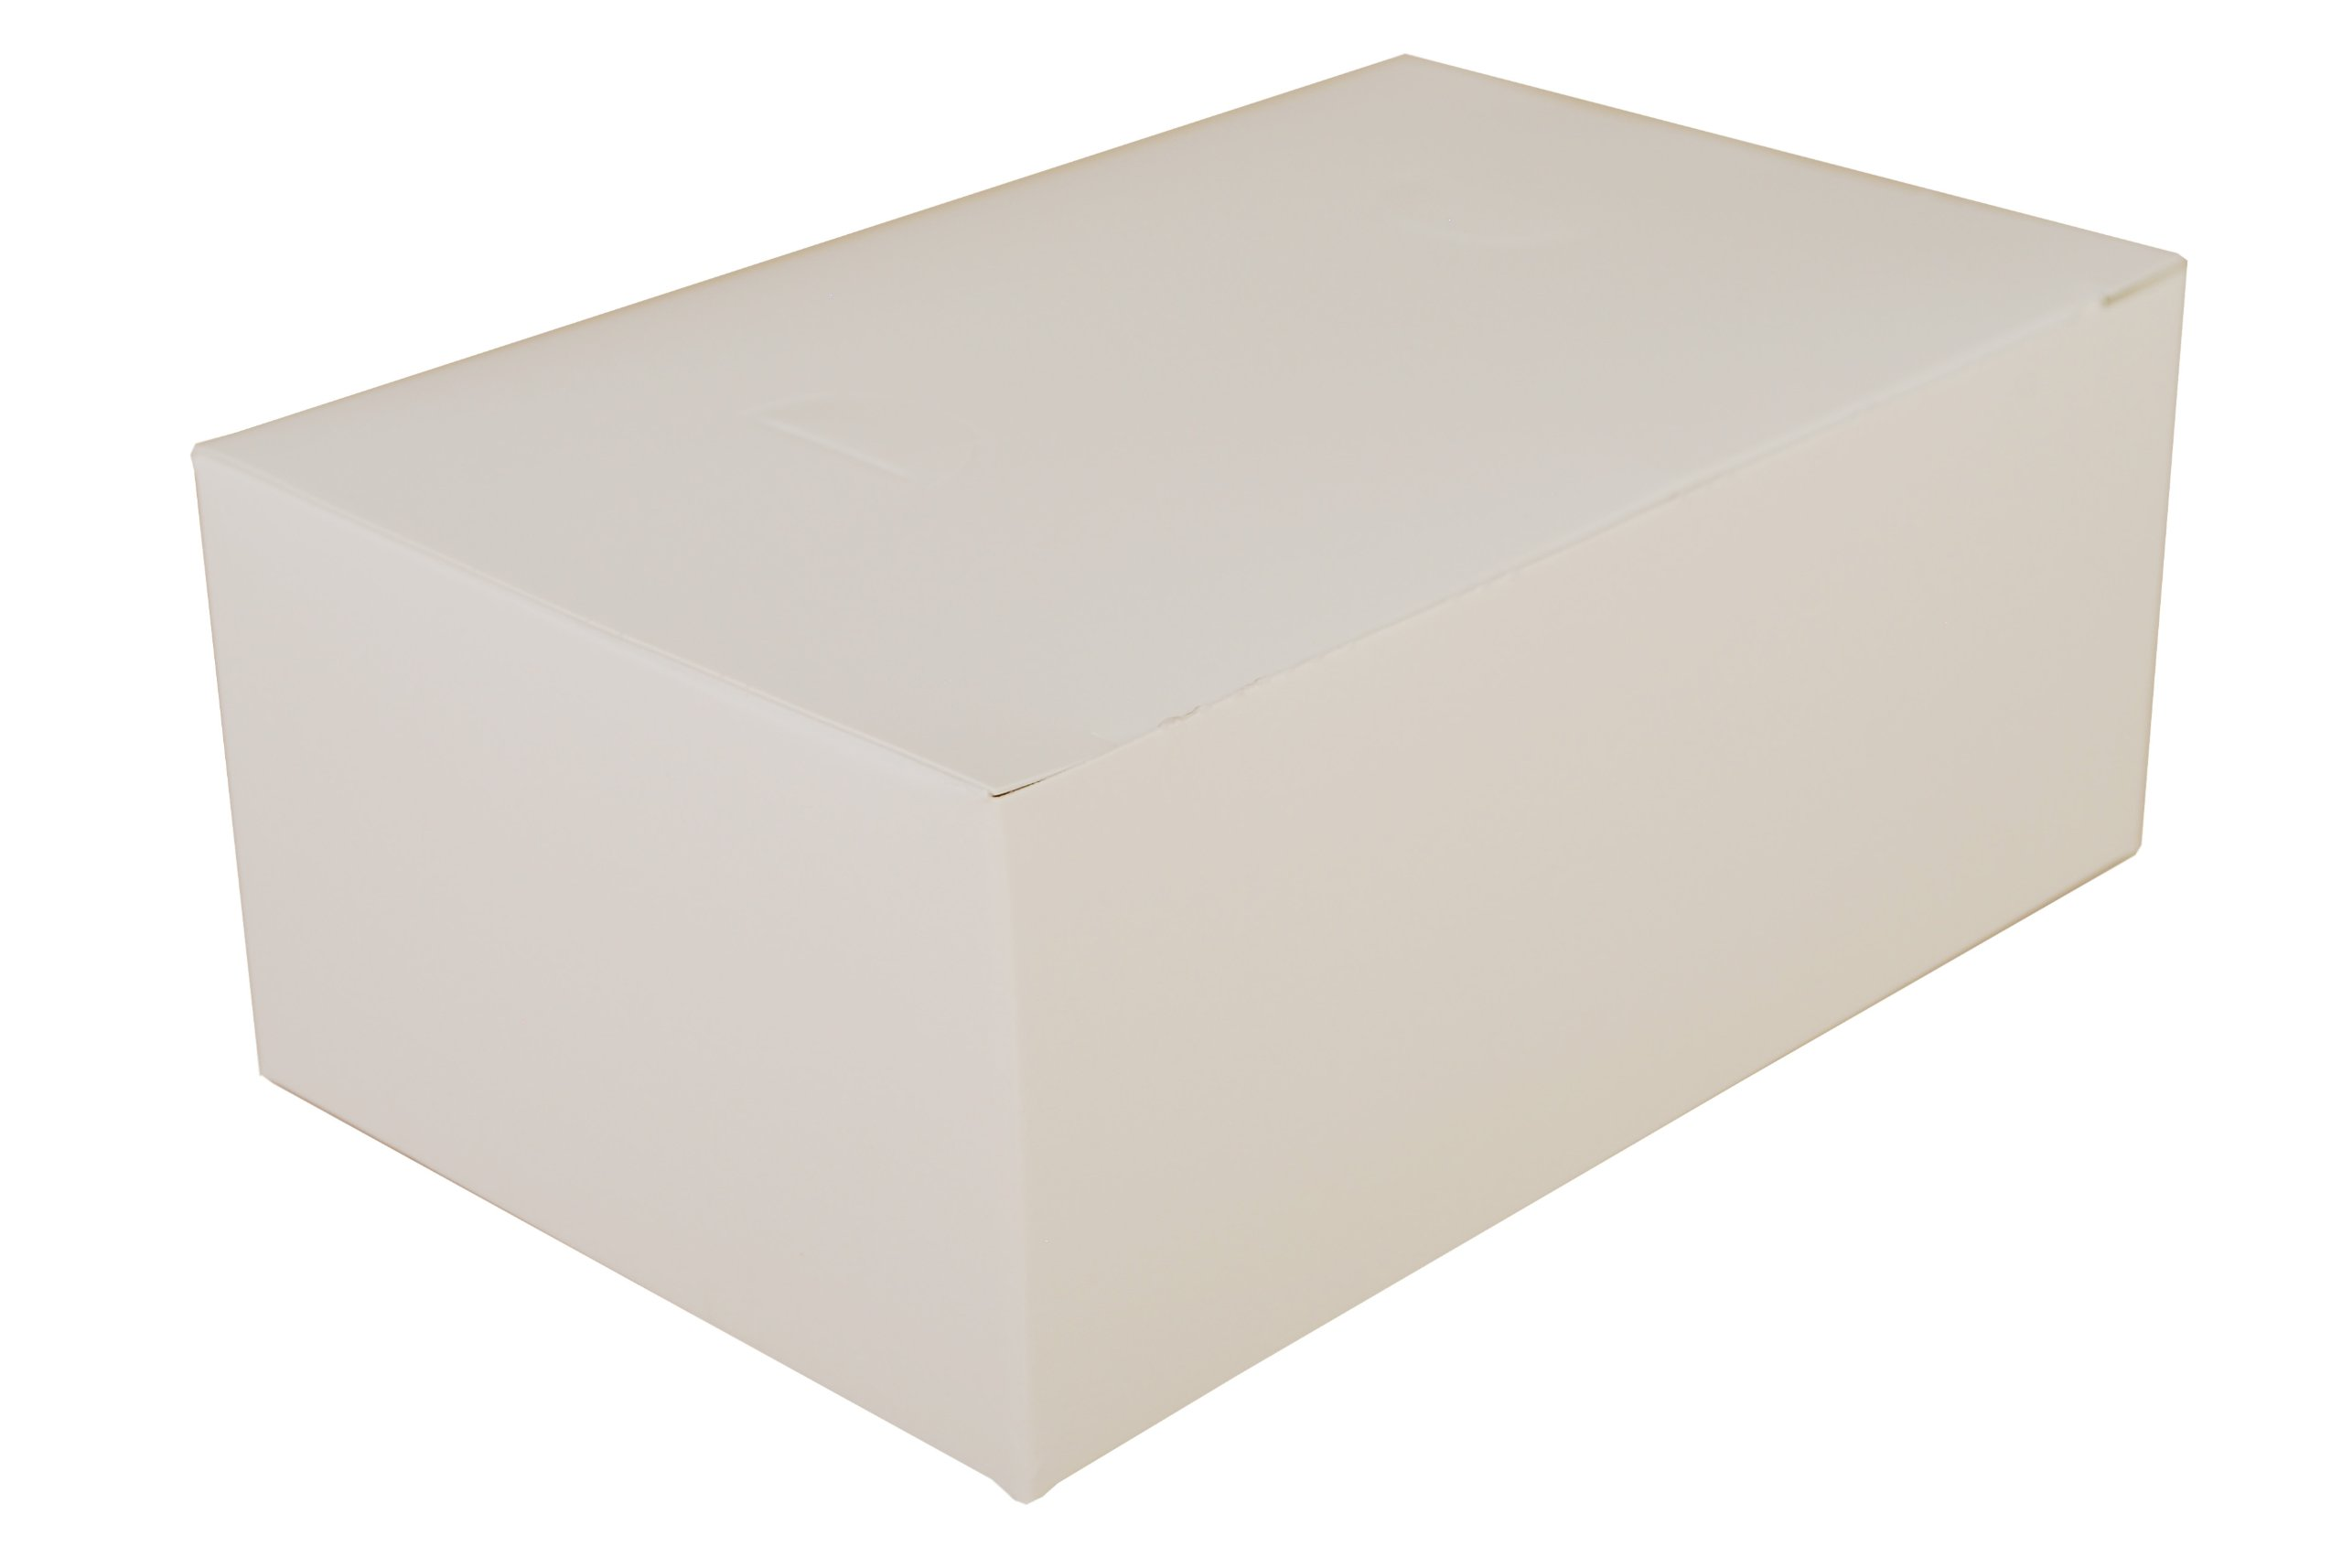 Southern Champion Tray 2717 Paperboard White Snack Carry-Out Box, Tuck Top, 7'' Length x 4-1/2'' Width x 2-3/4'' Height (Case of 500)